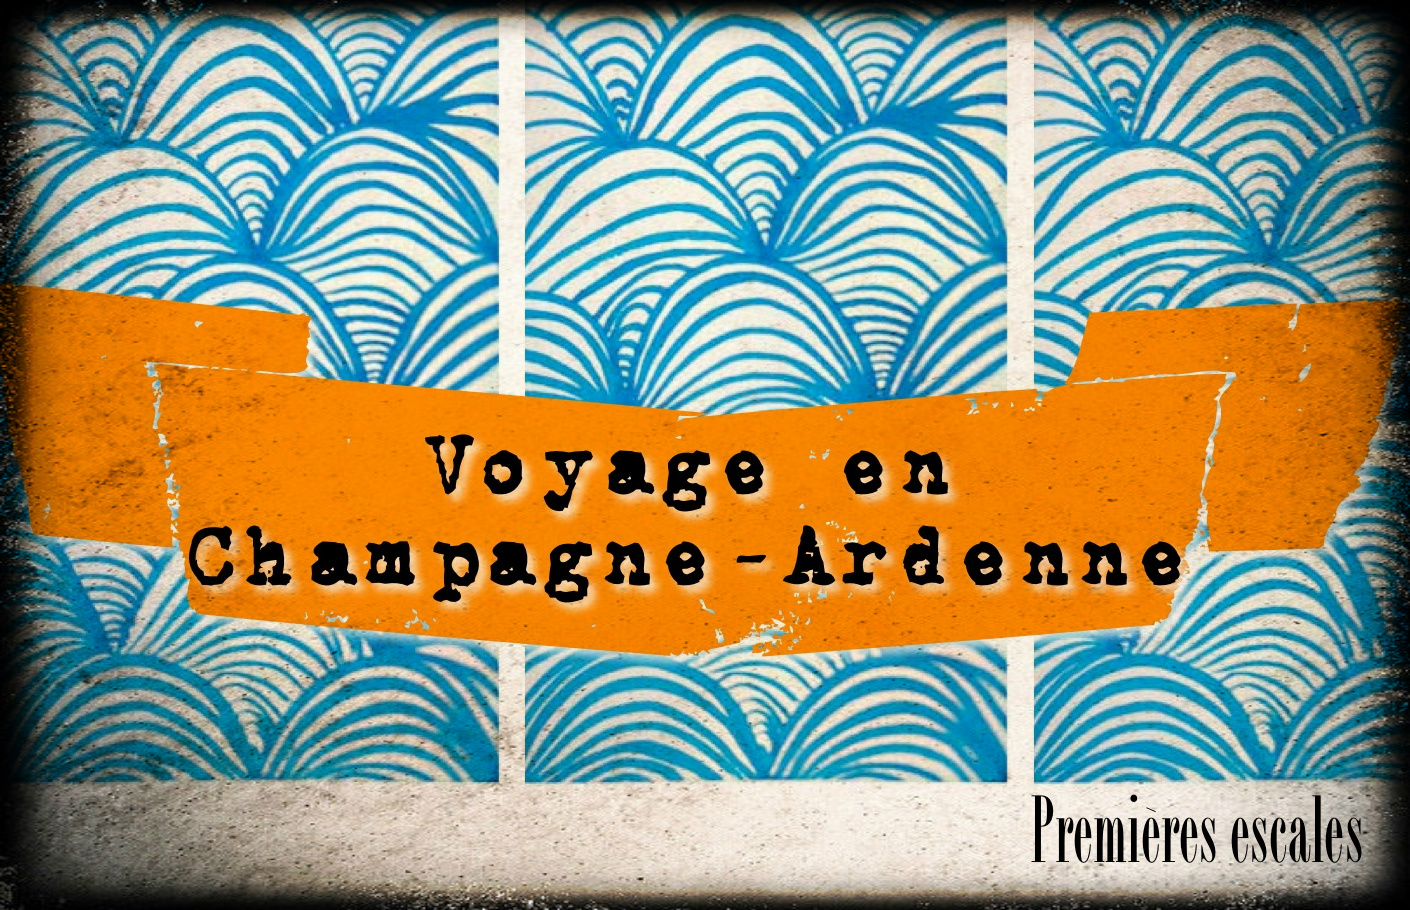 voyager voyage en france blog tour du monde photo champagne